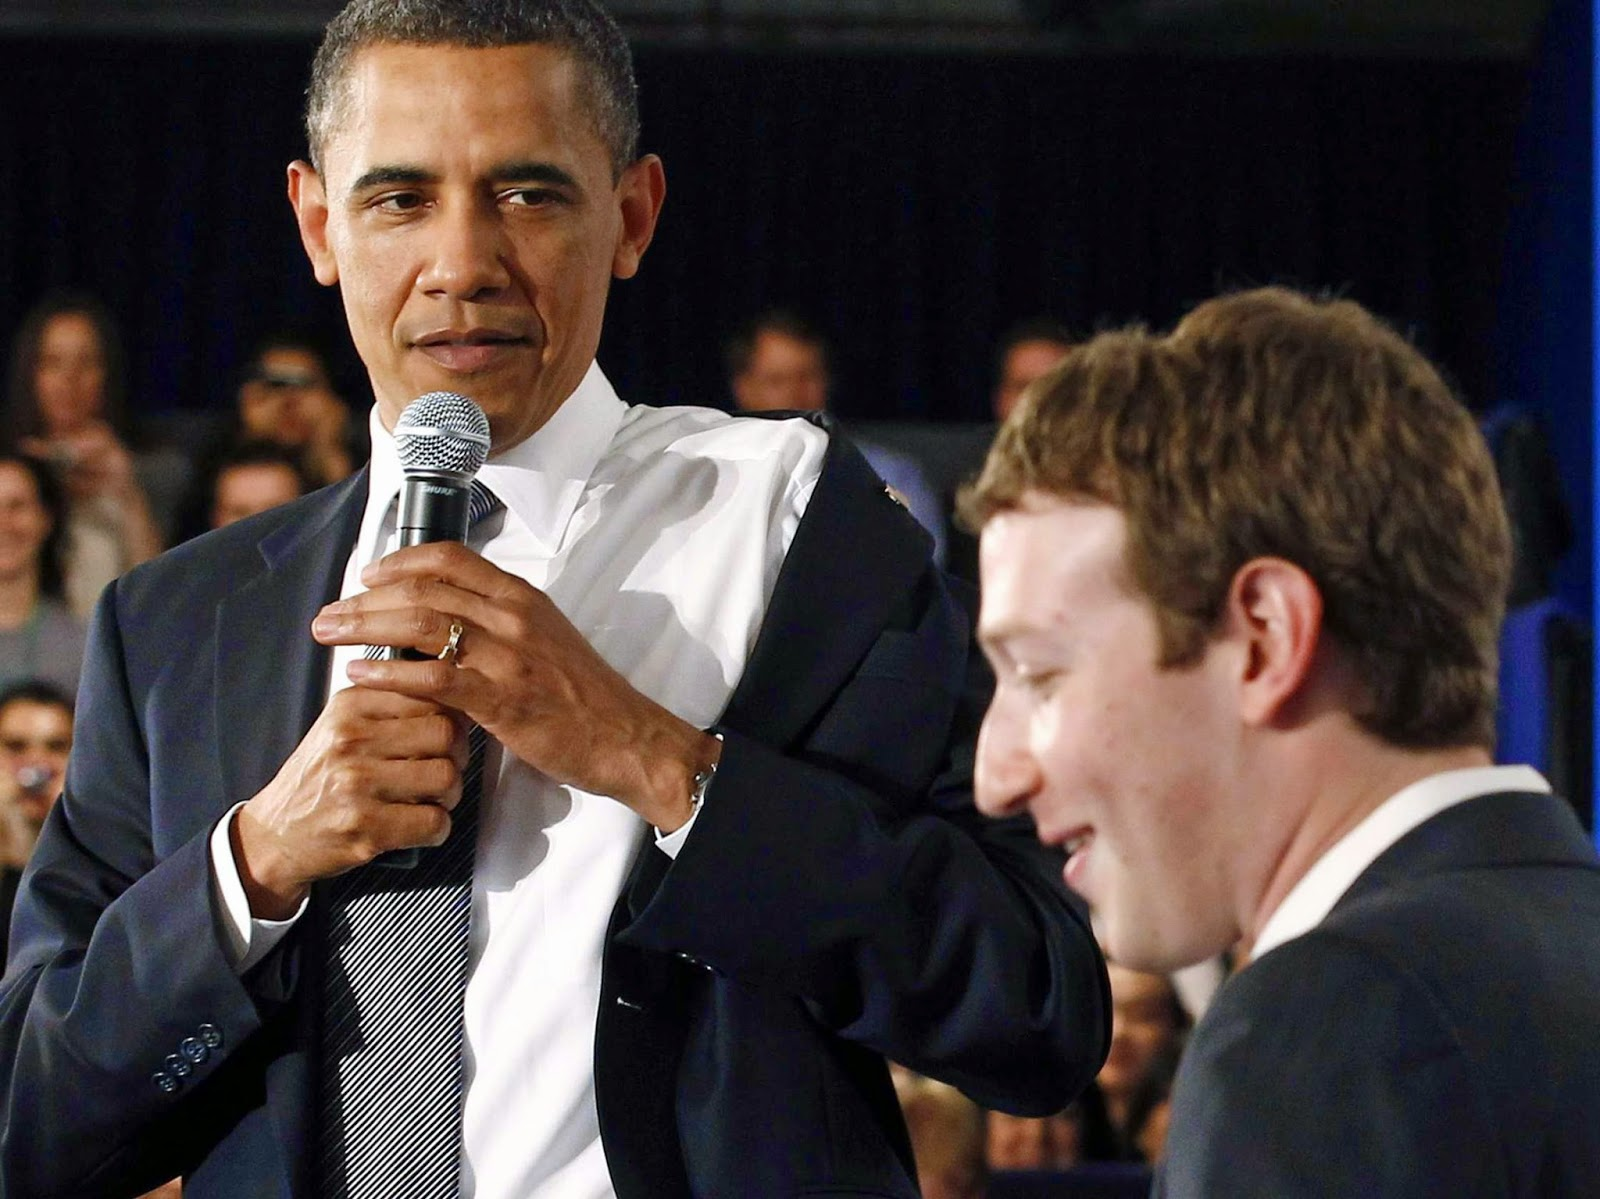 Barack Obama and Mark Zuckerberg kibitz